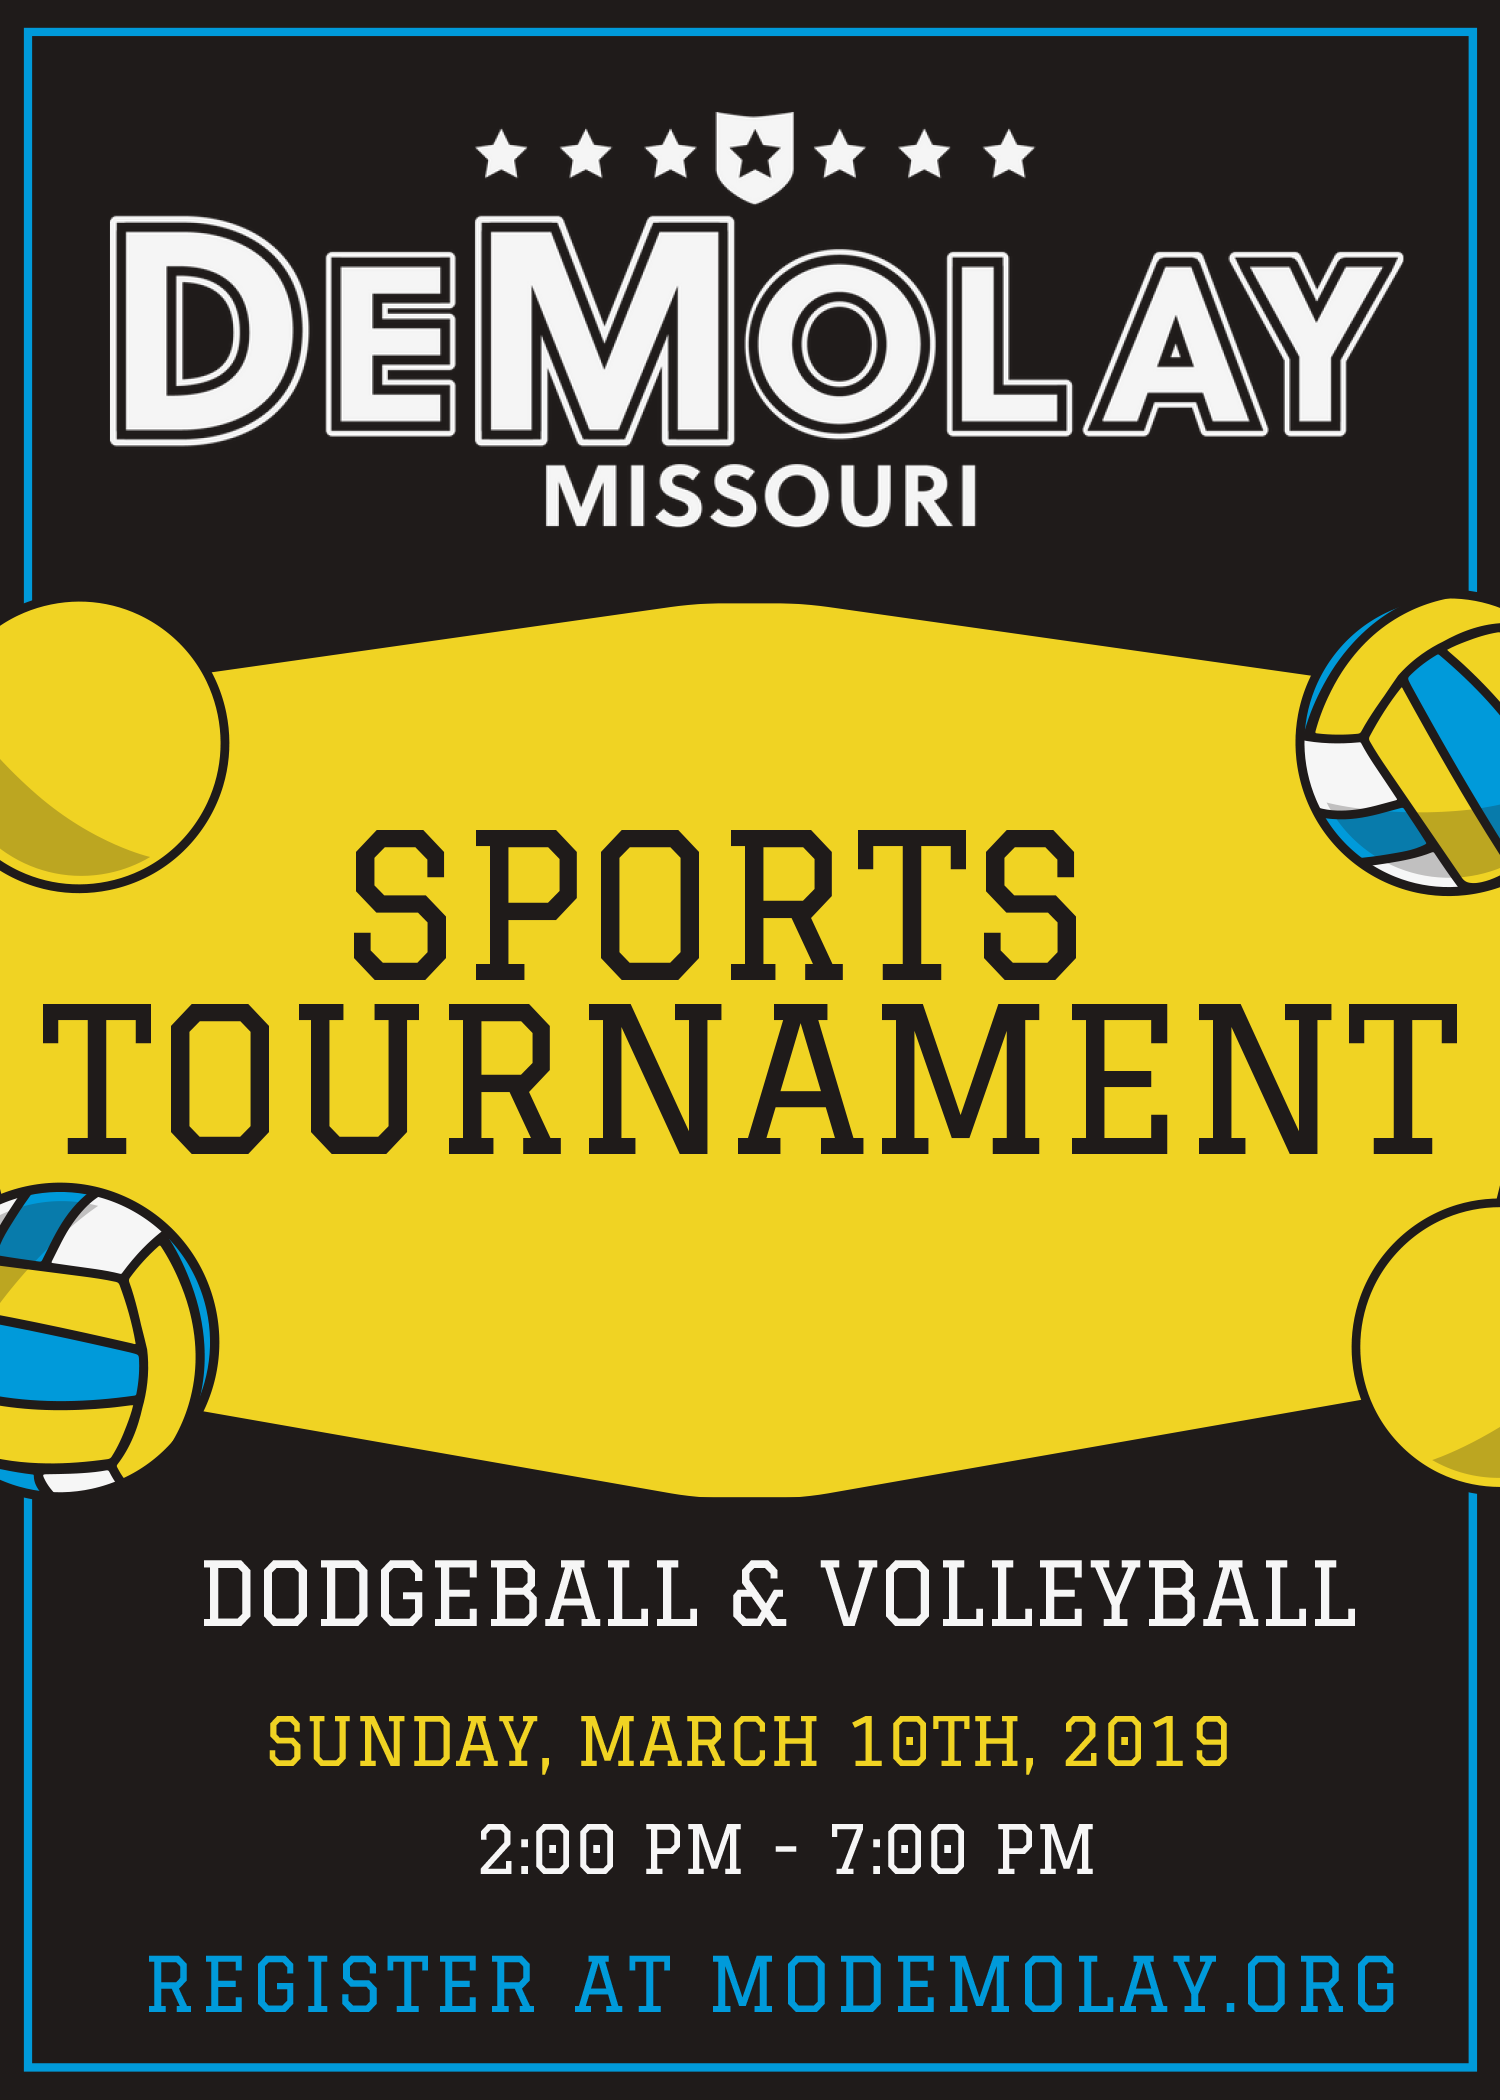 Missouri DeMolay Sports Tournament